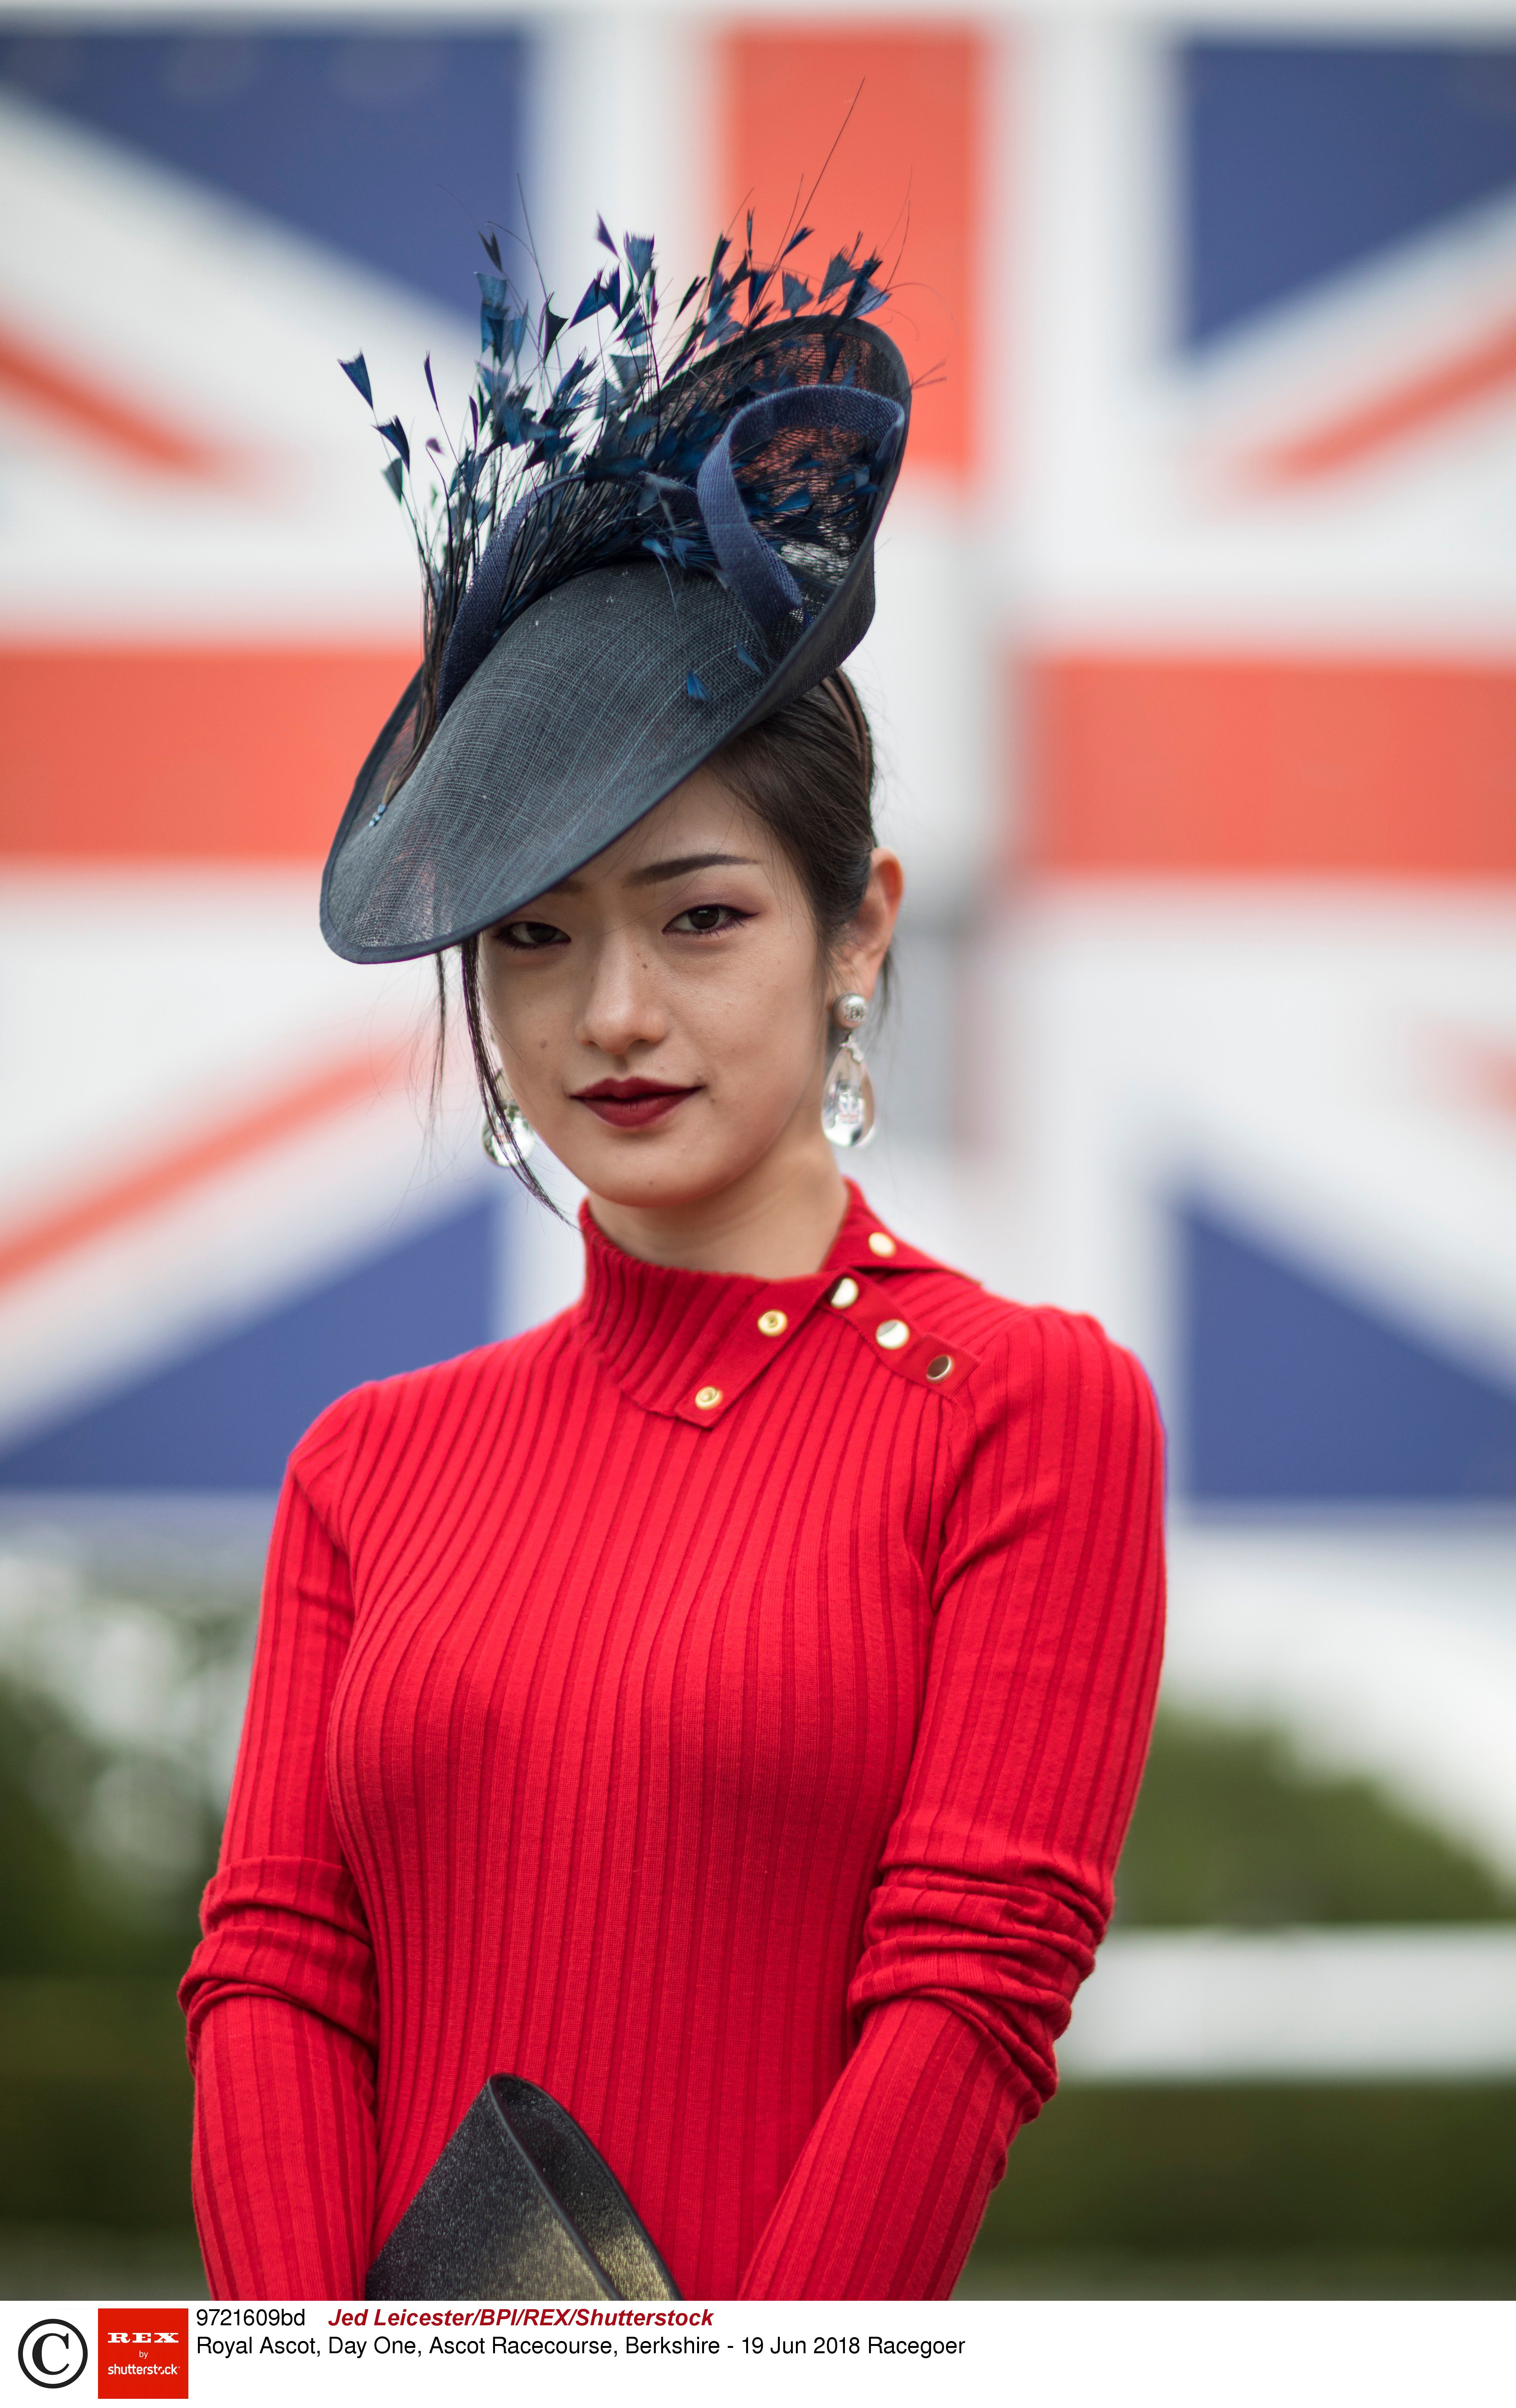 Best Royal Ascot 2018 Hats f1d6af40b79